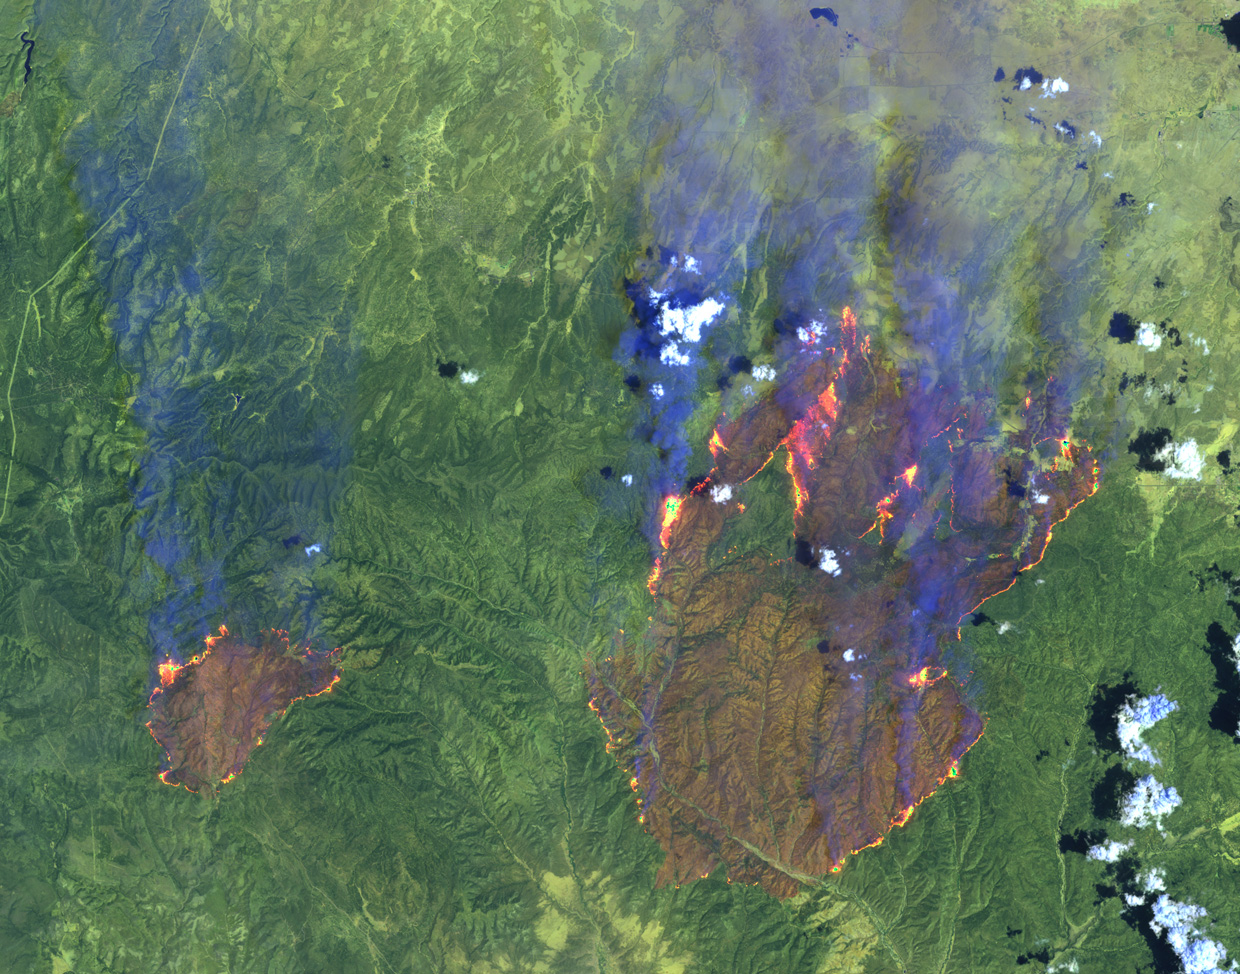 Satellite image of green mountains. Fires are large and small smoking, pink-orange patches.